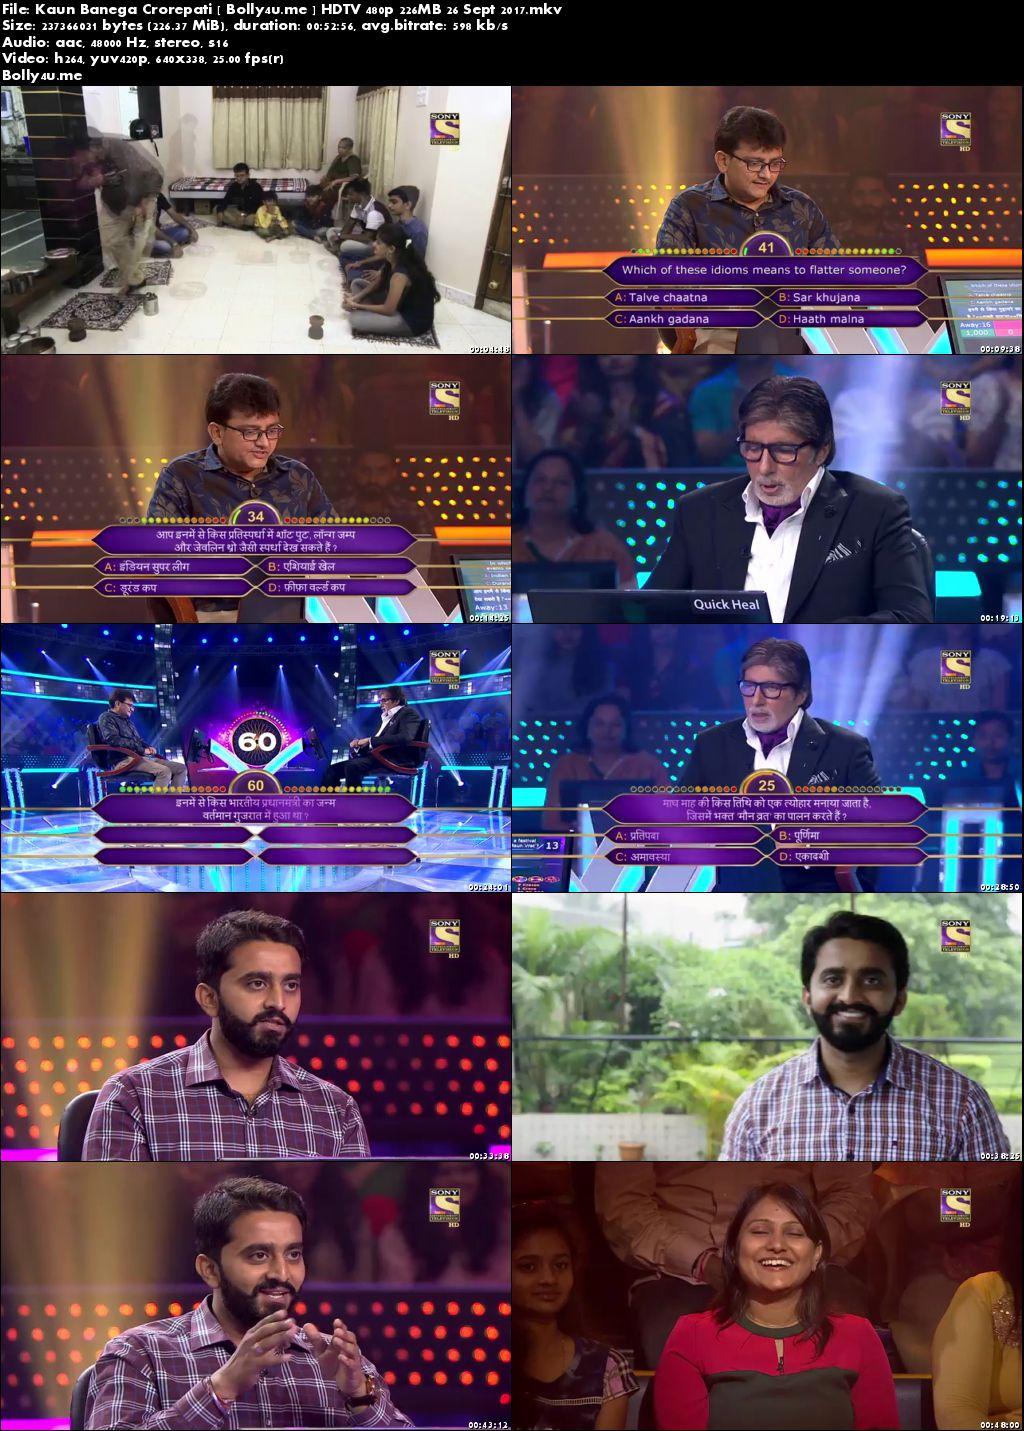 Kaun Banega Crorepati HDTV 200MB 480p 26 Sept 2017 Download